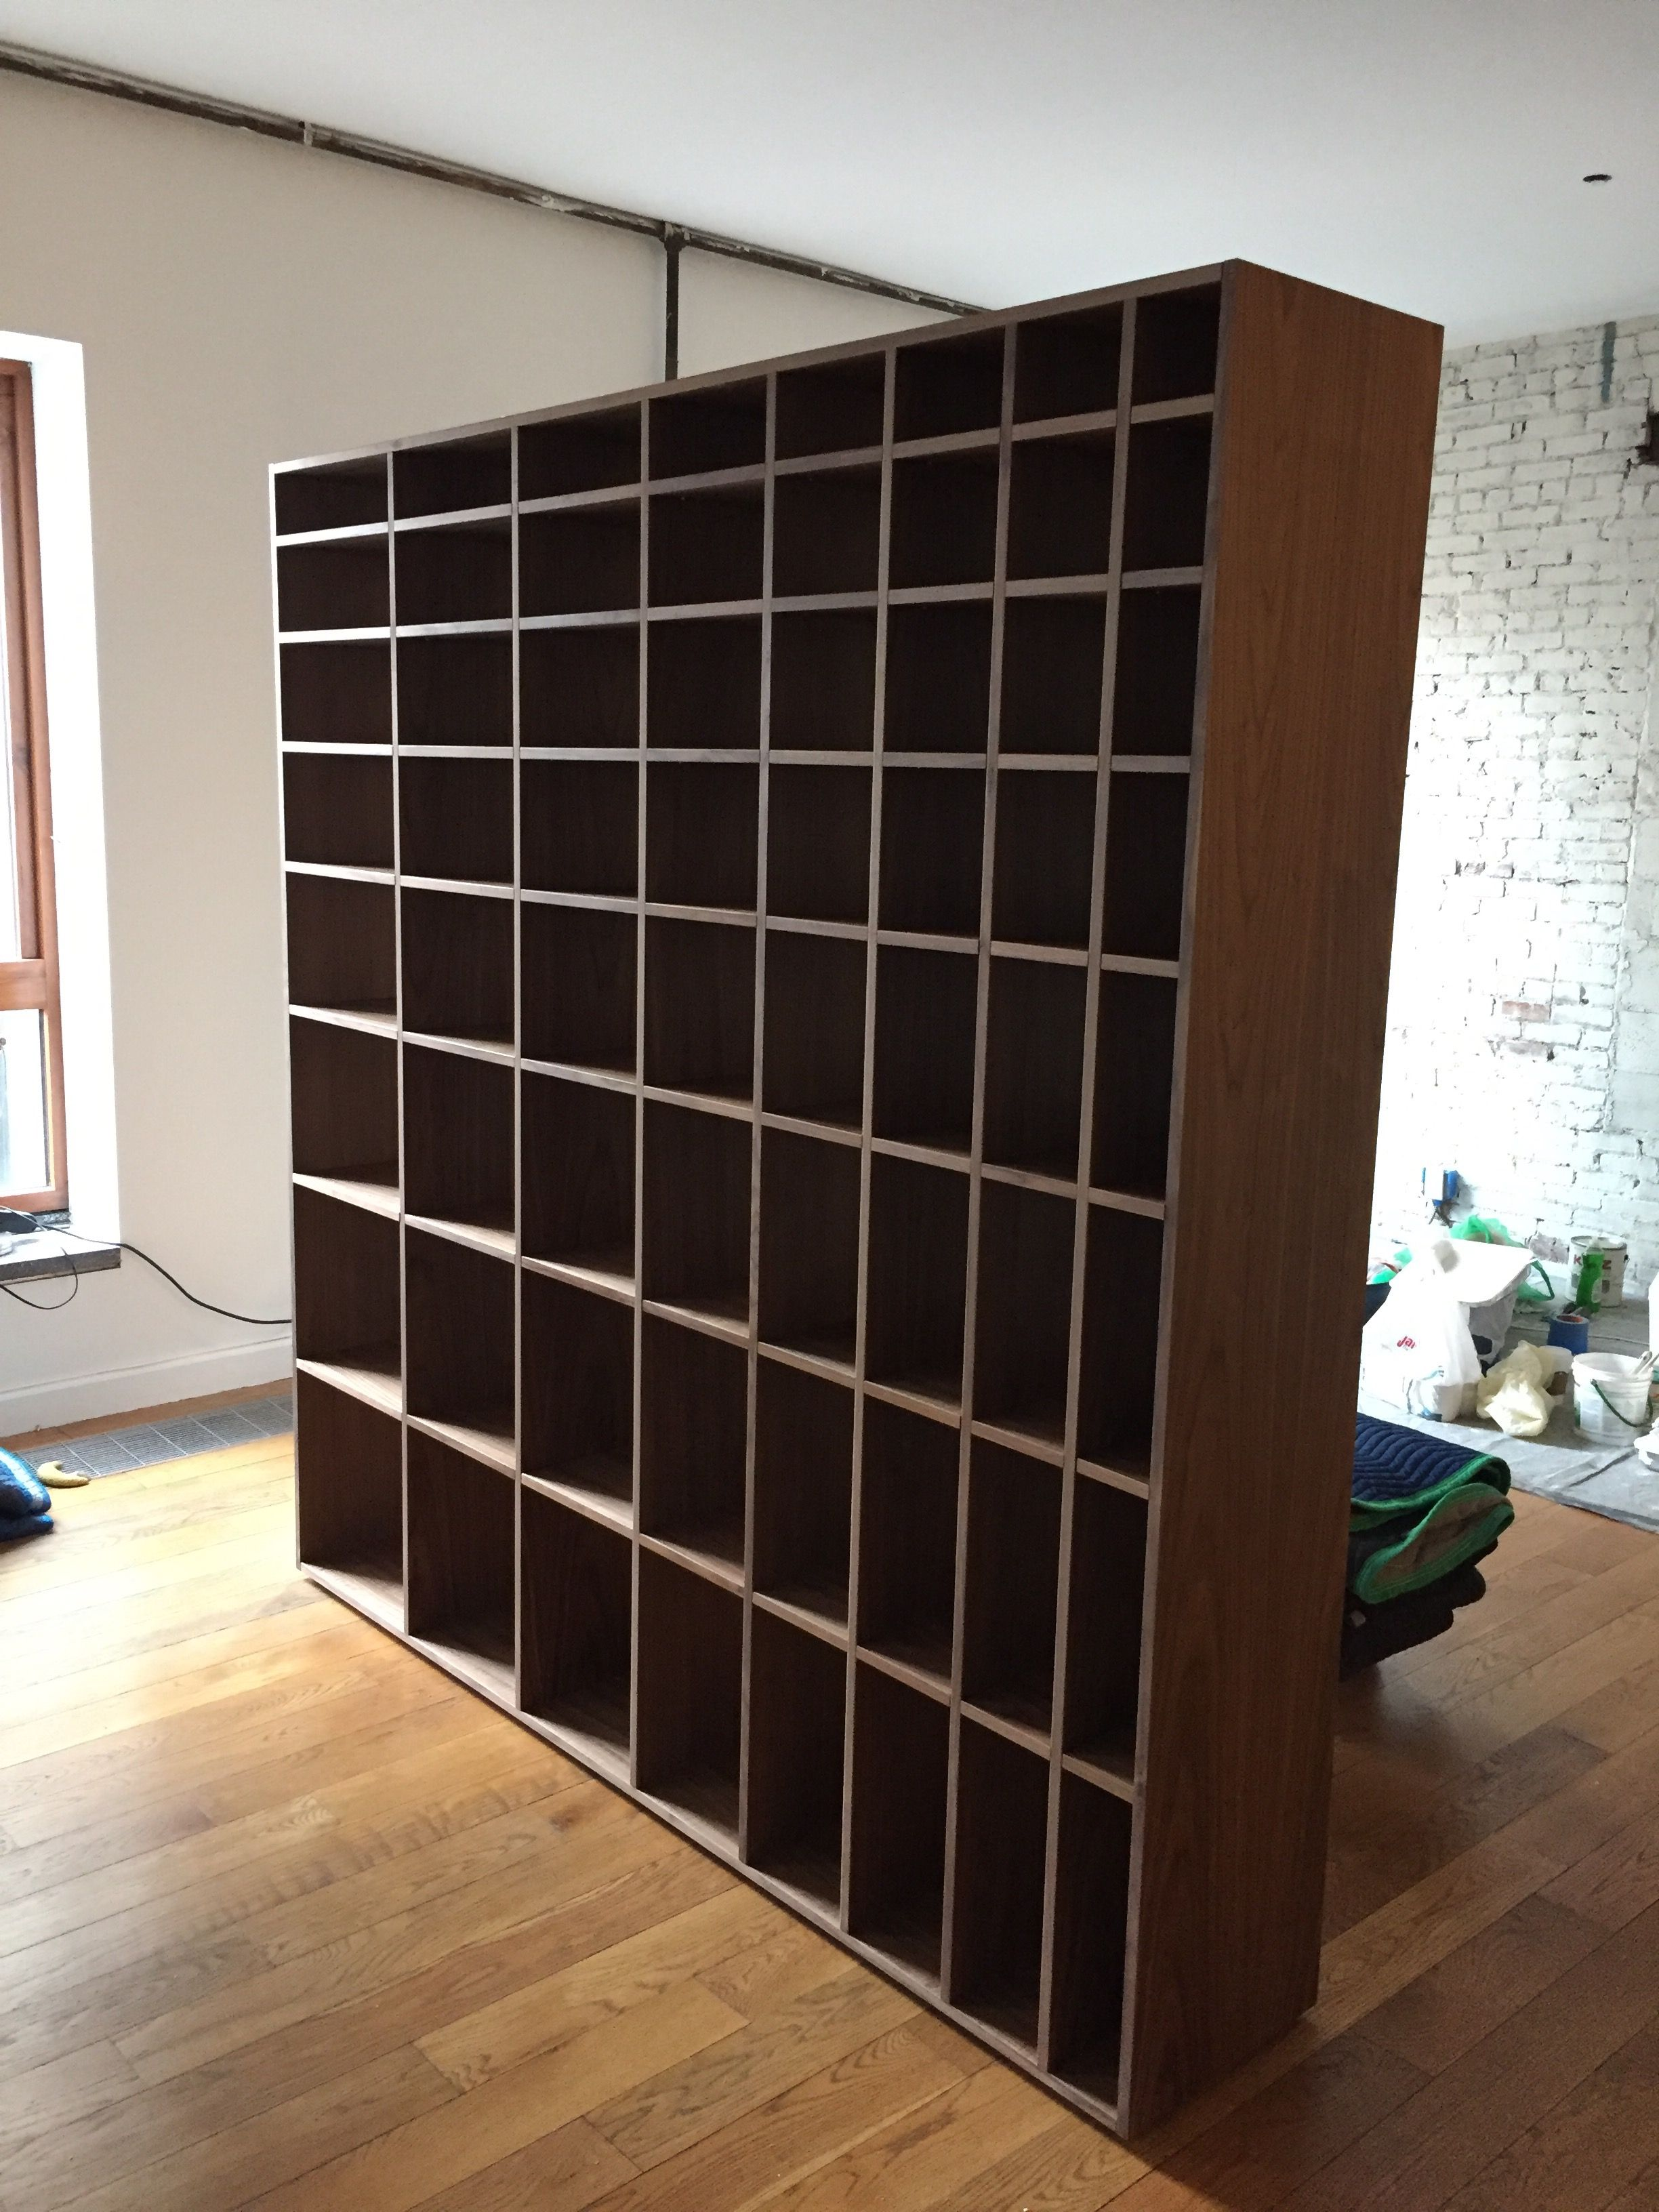 Custom Bookcase Room Divider By Ezequiel Rotstain Design